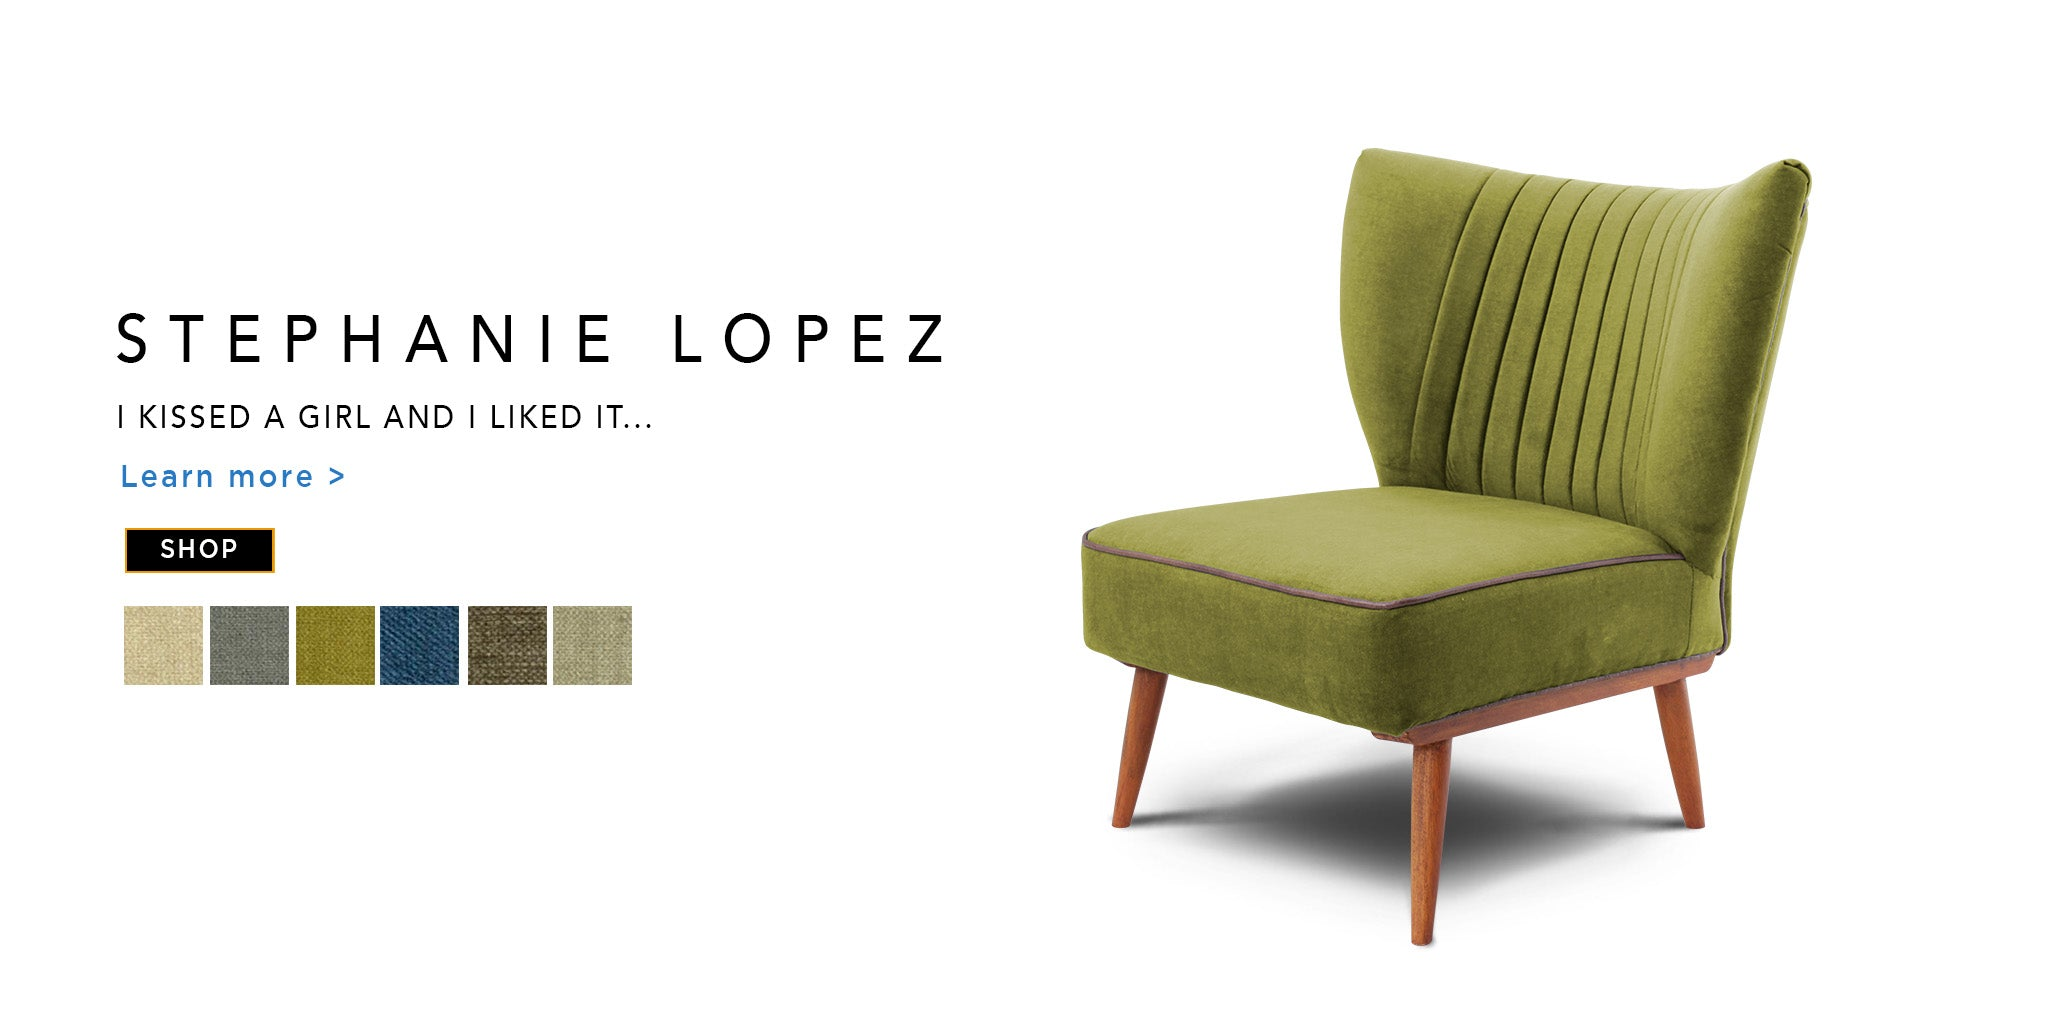 counter culture best retro chair stephanie lopez catalogue page - Retro Chairs